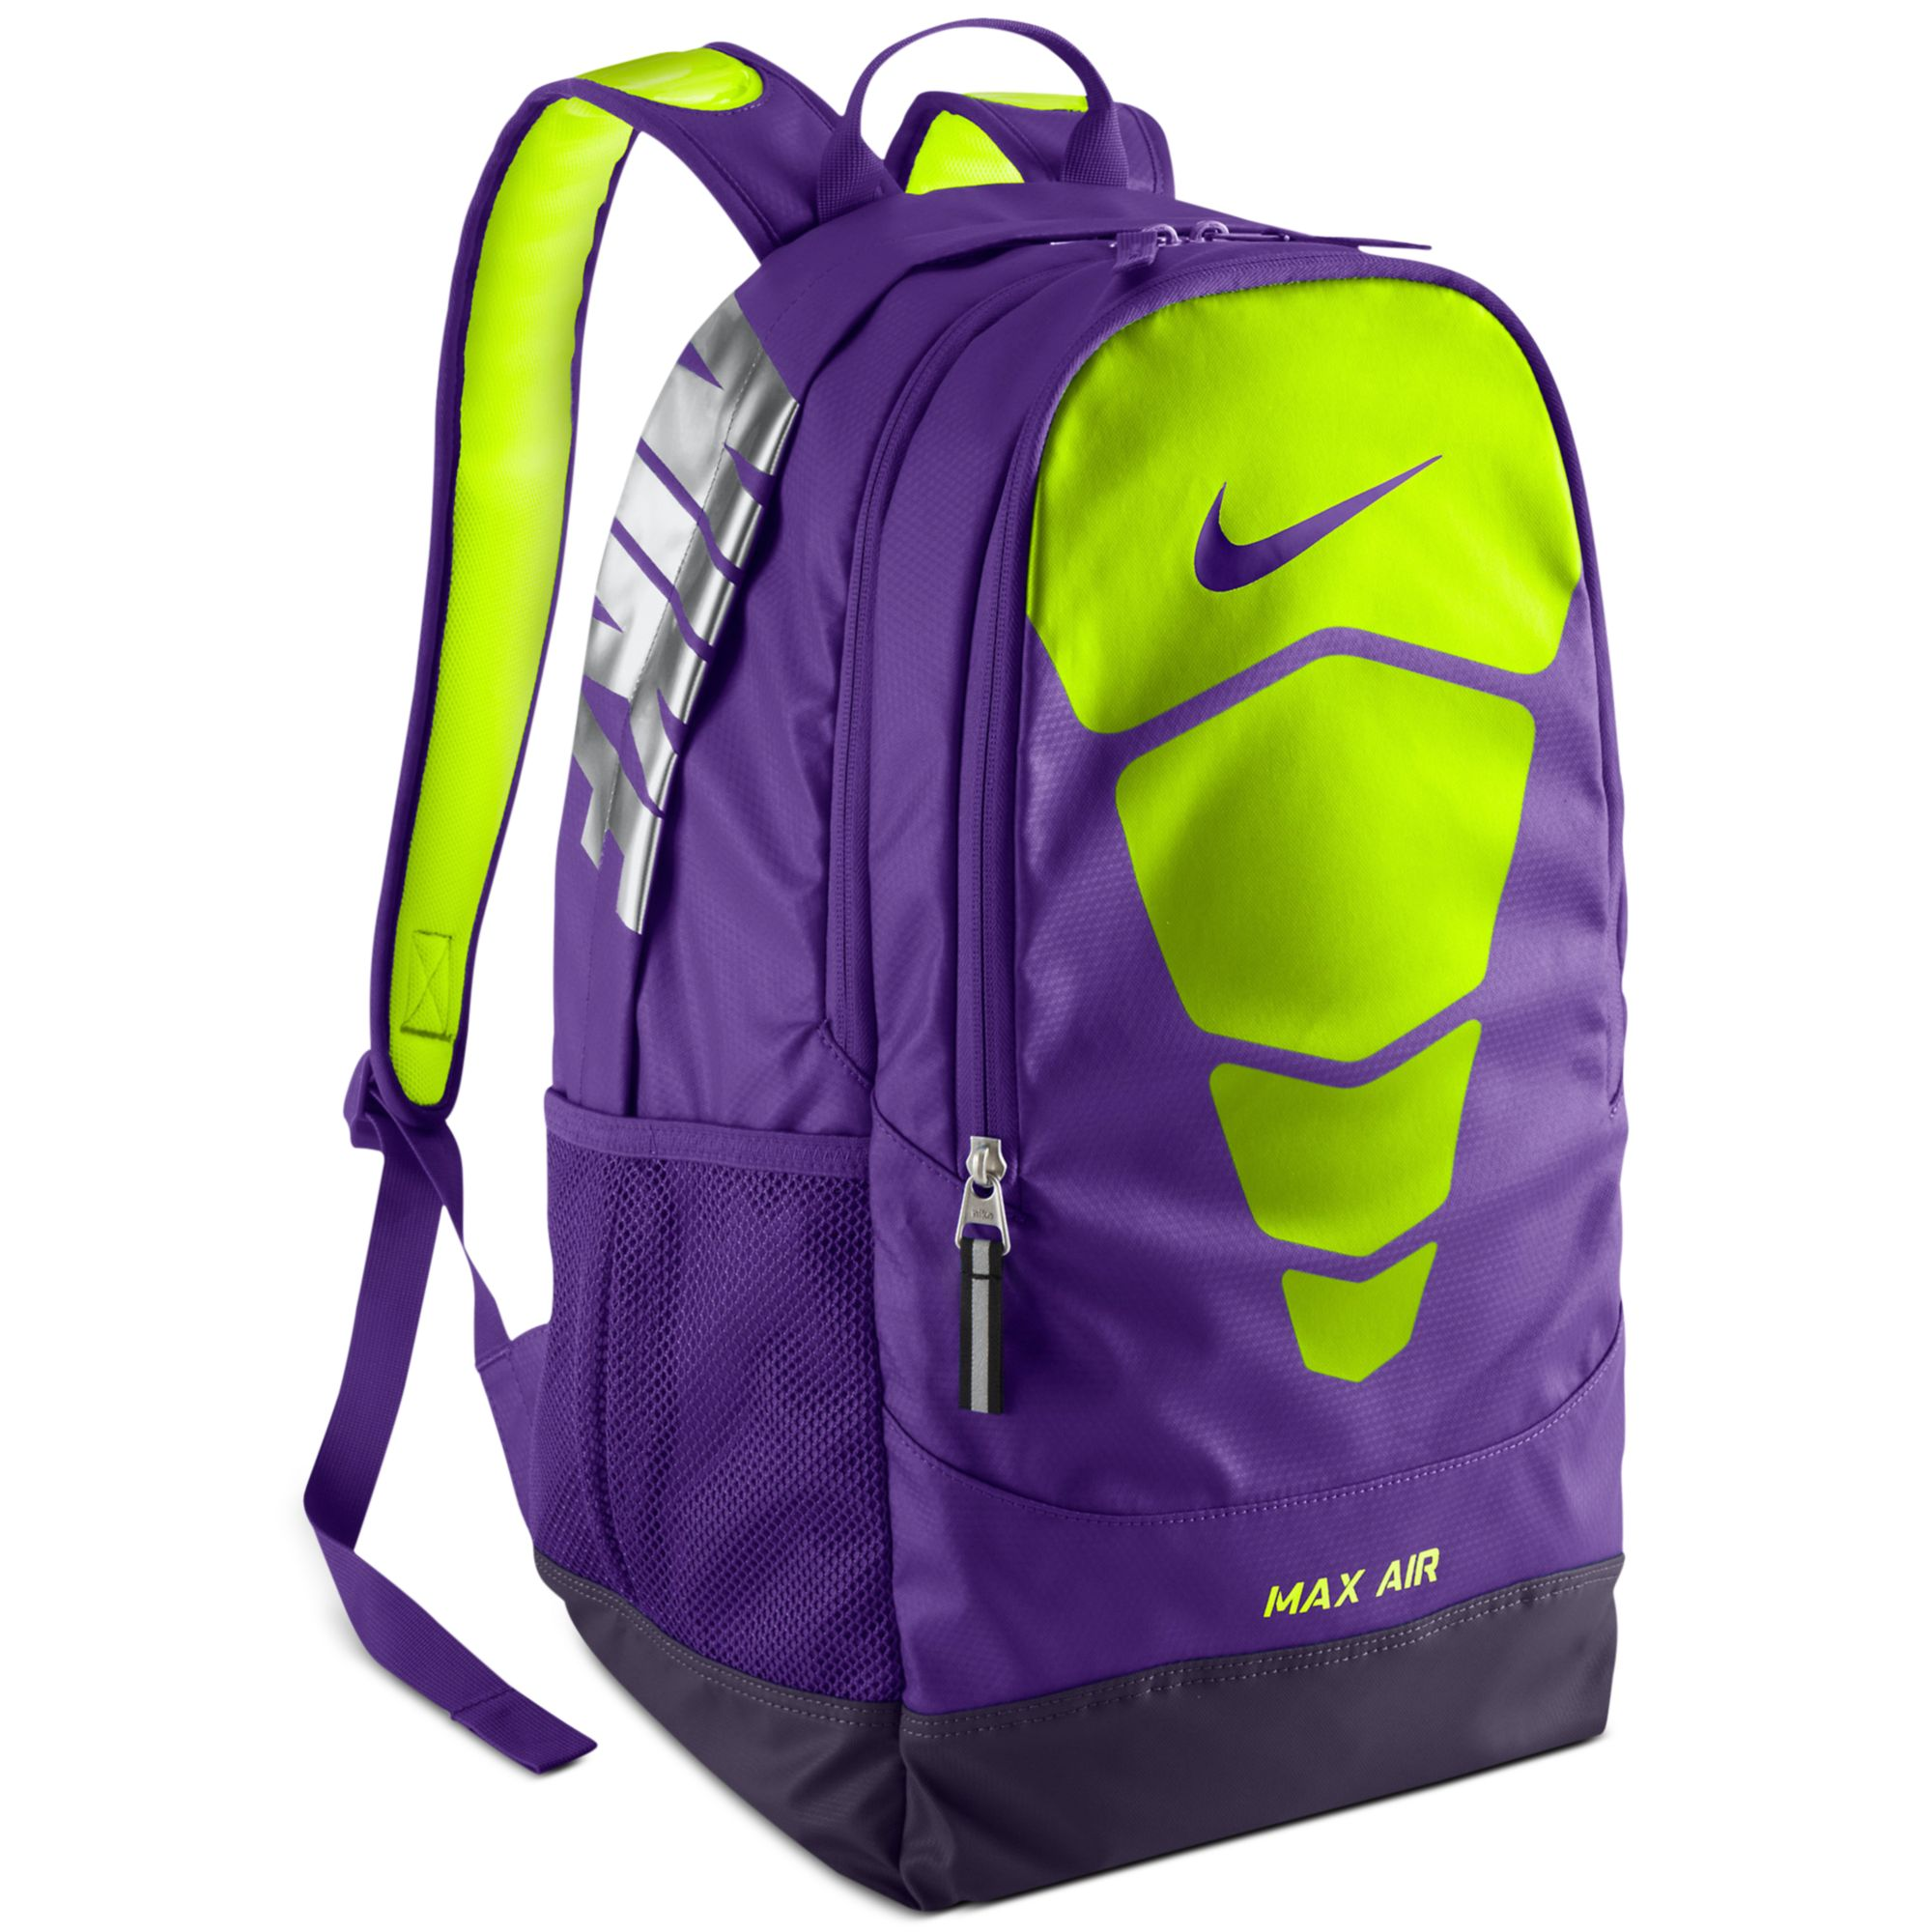 4e77be440f Nike - Purple Vapor Max Air Backpack for Men - Lyst